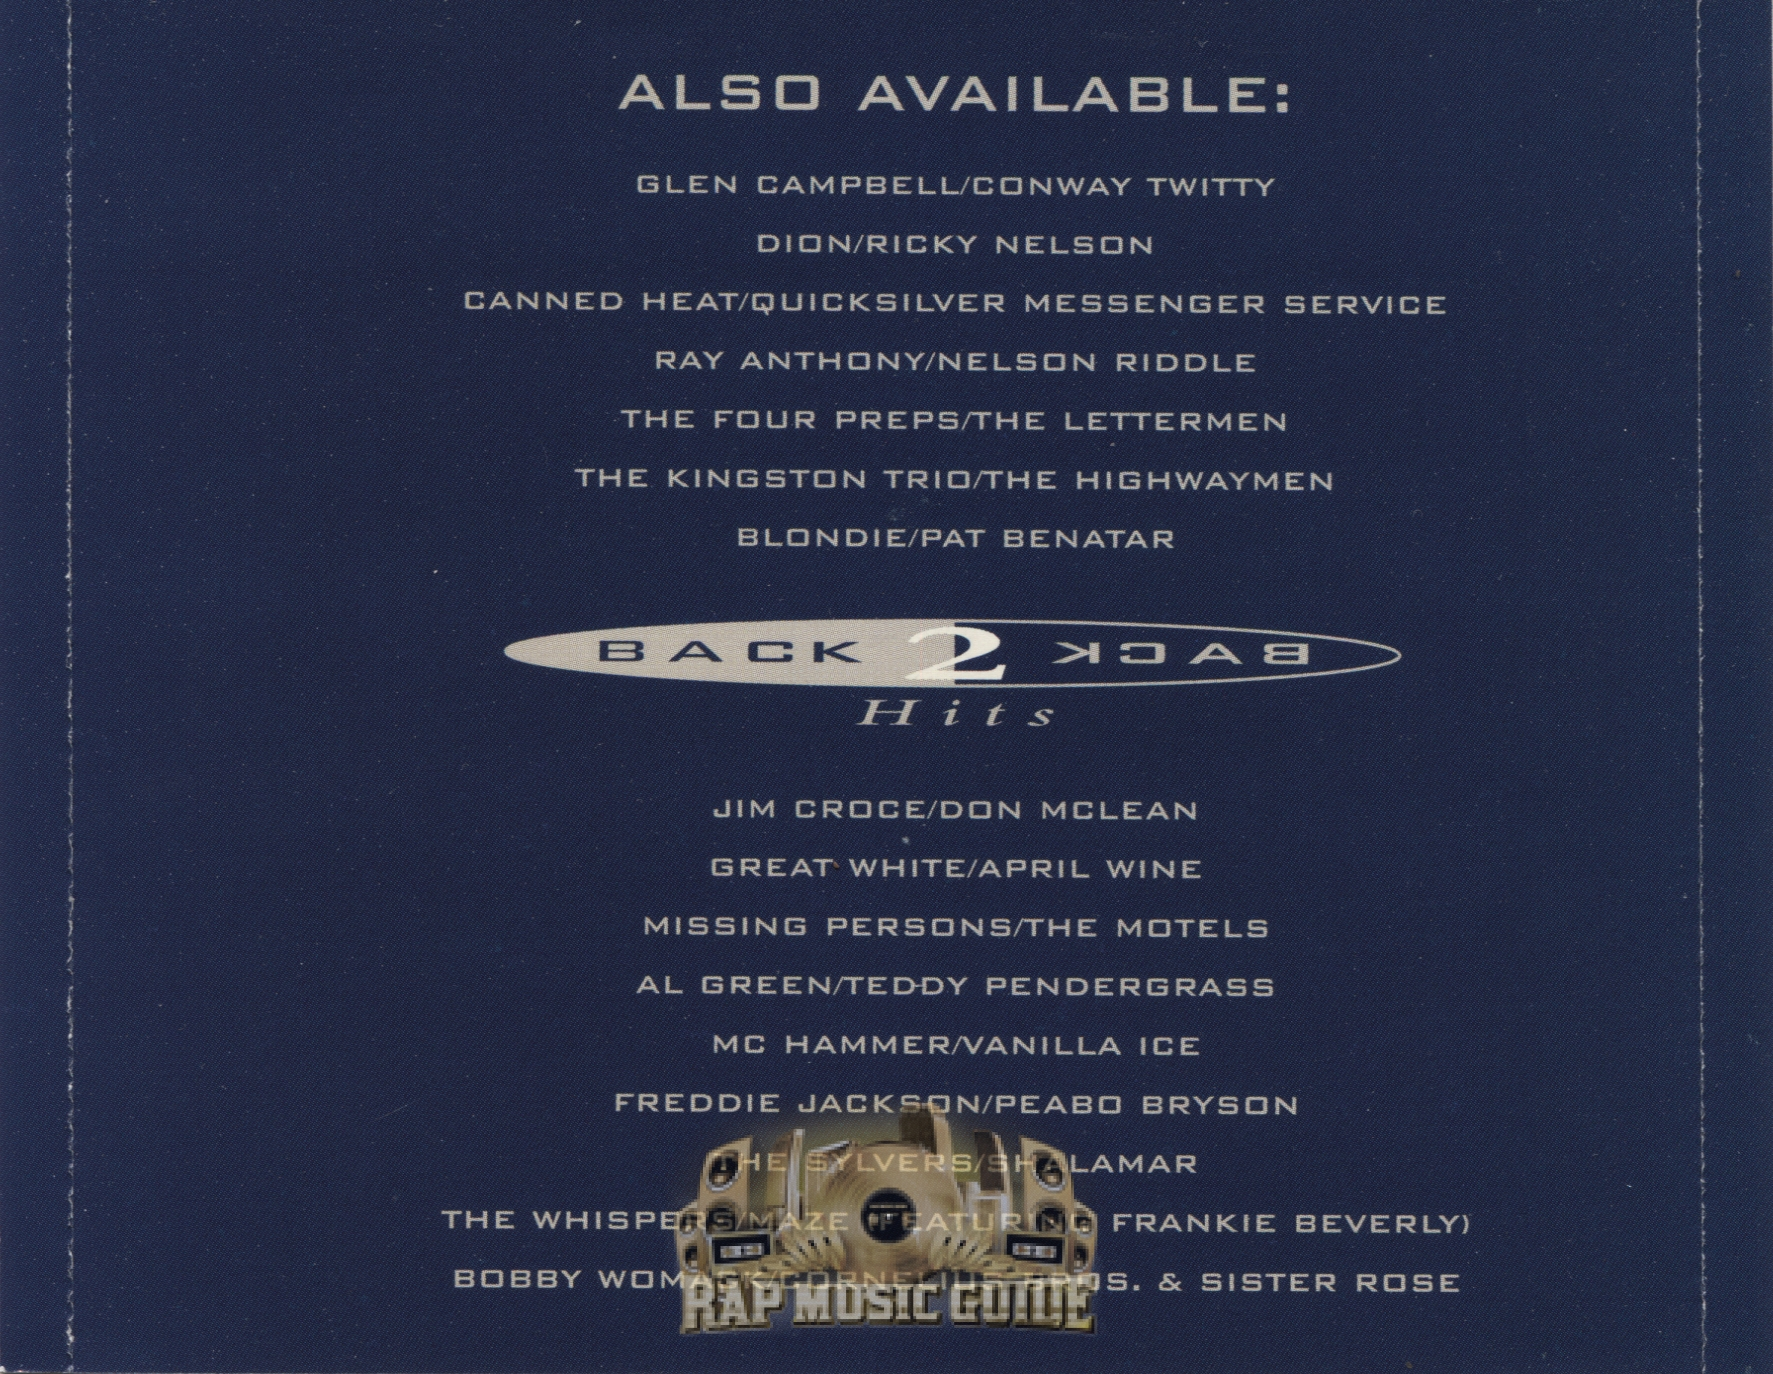 MC Hammer & Vanilla Ice - Back 2 Back Hits: CD | Rap Music ...